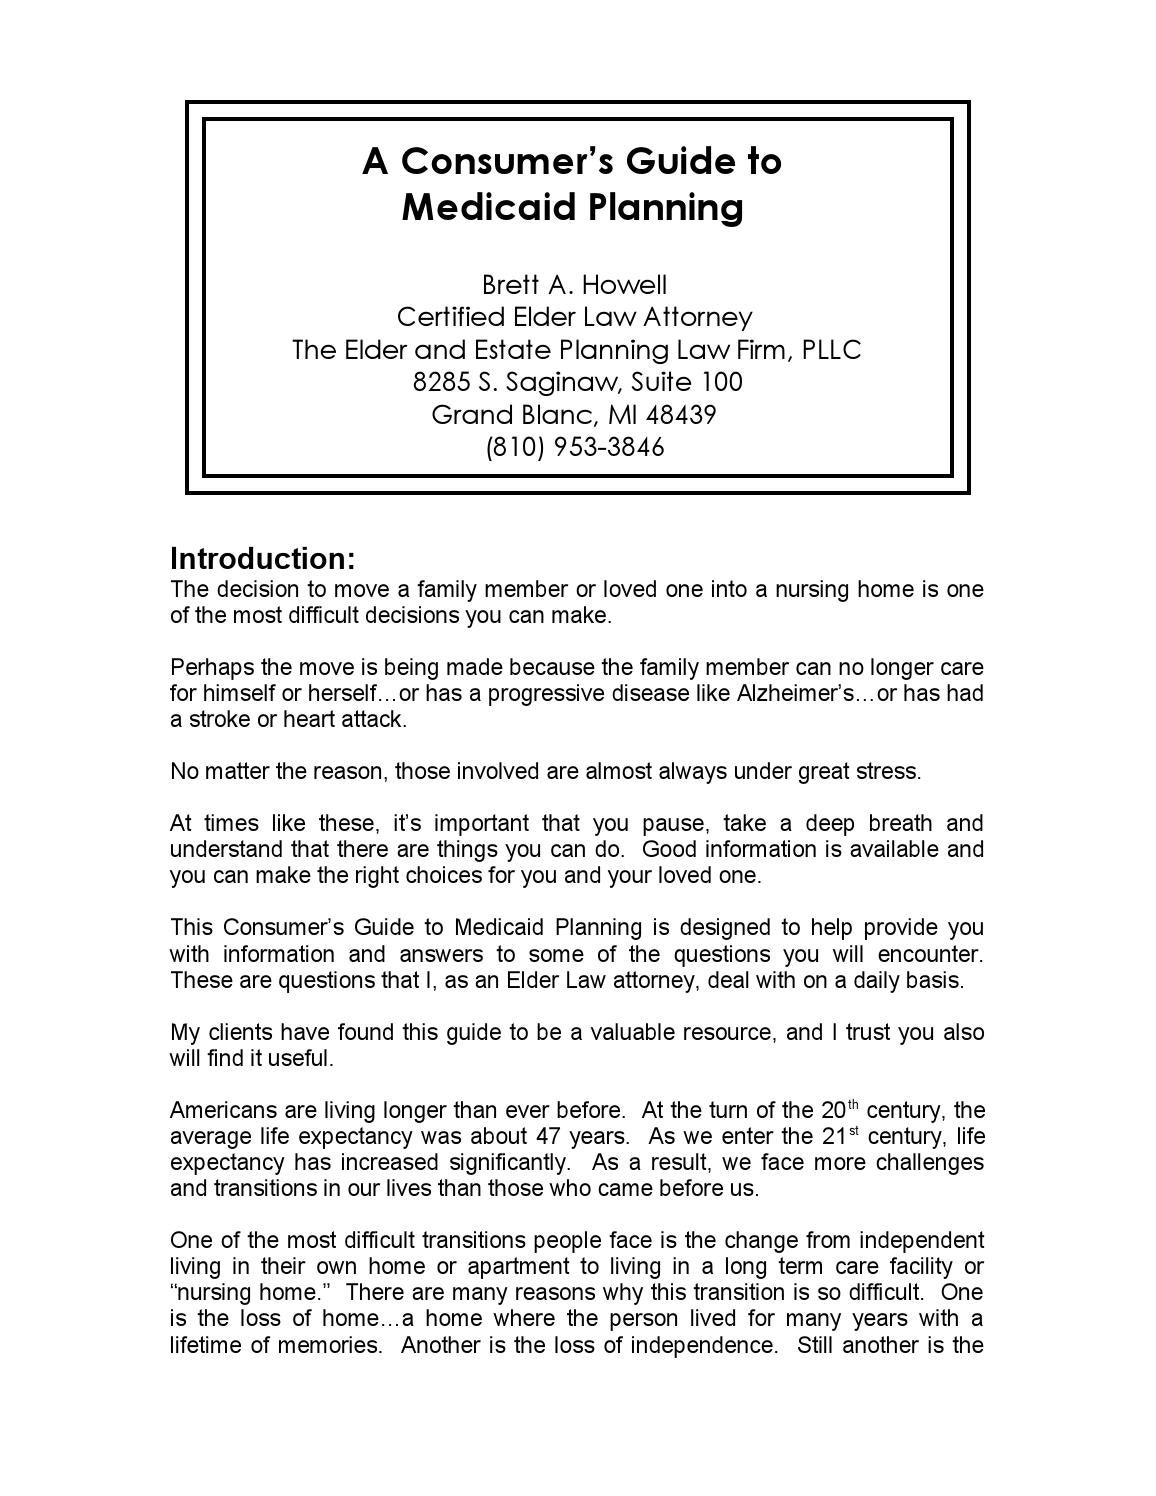 Consumers guide to medicaid planning by Elder and Estate Planning